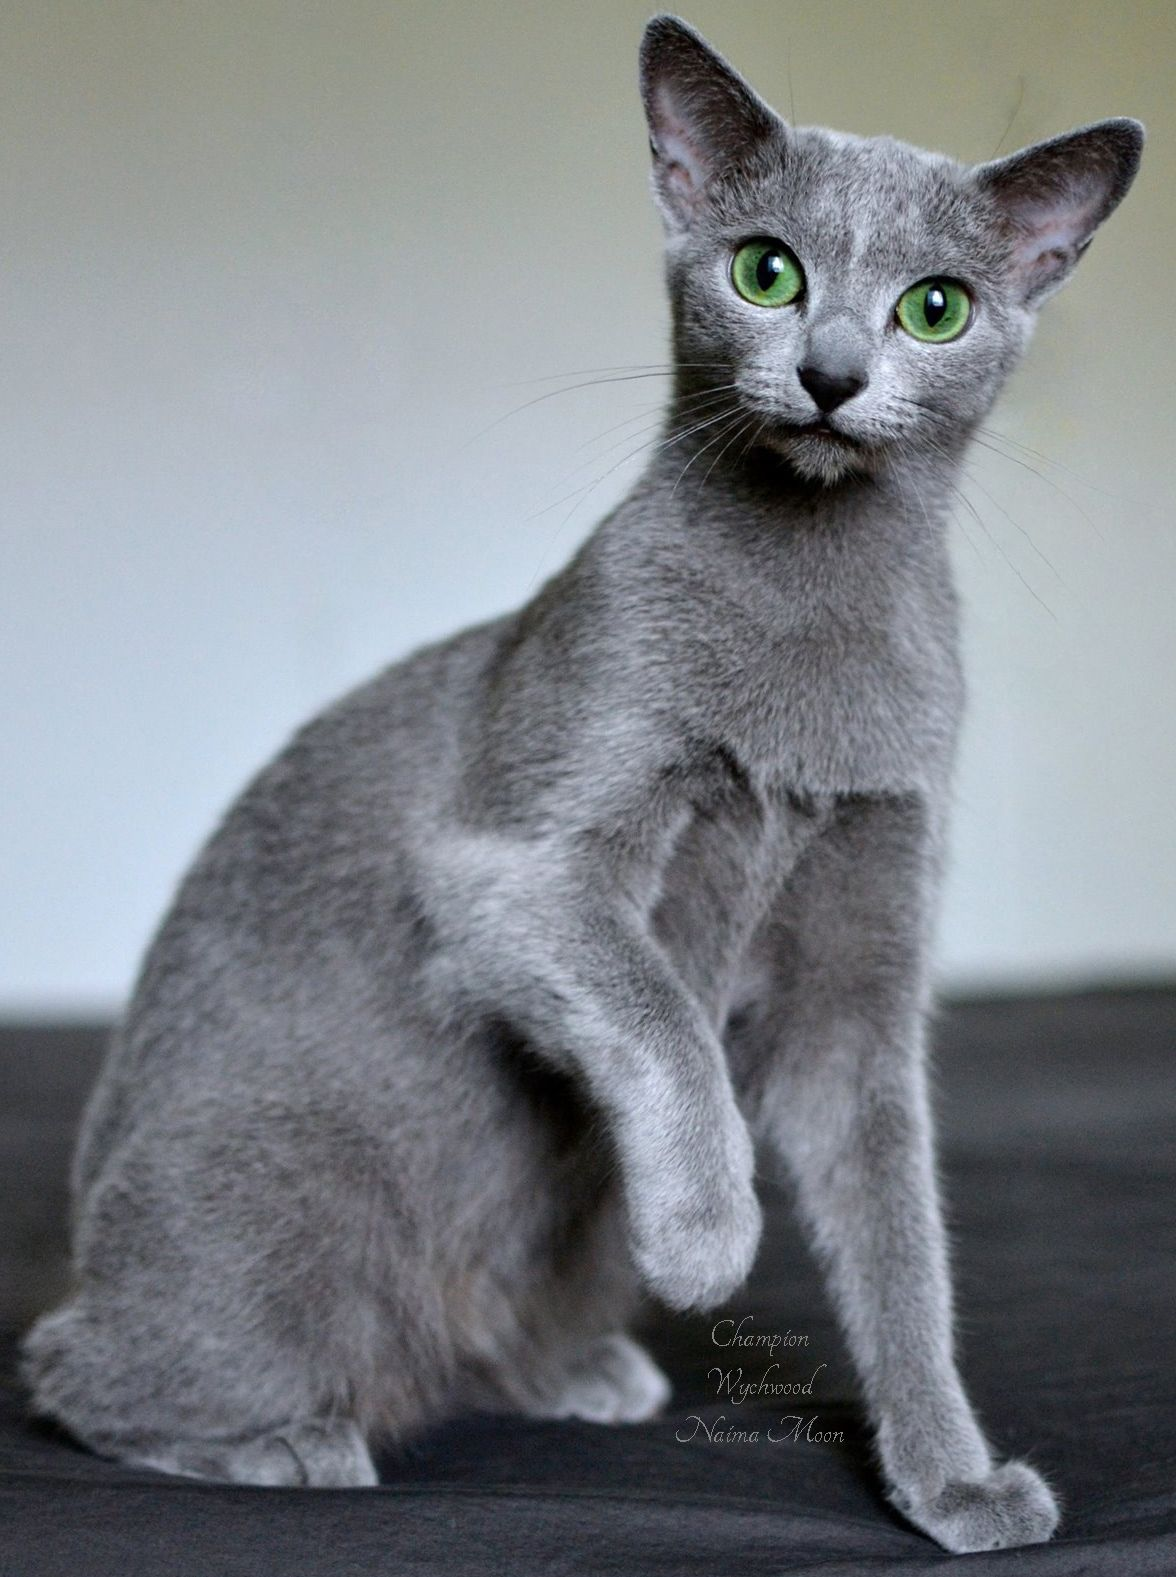 Wychwood Russian Blue cat Naima Moon Our beautiful princess with